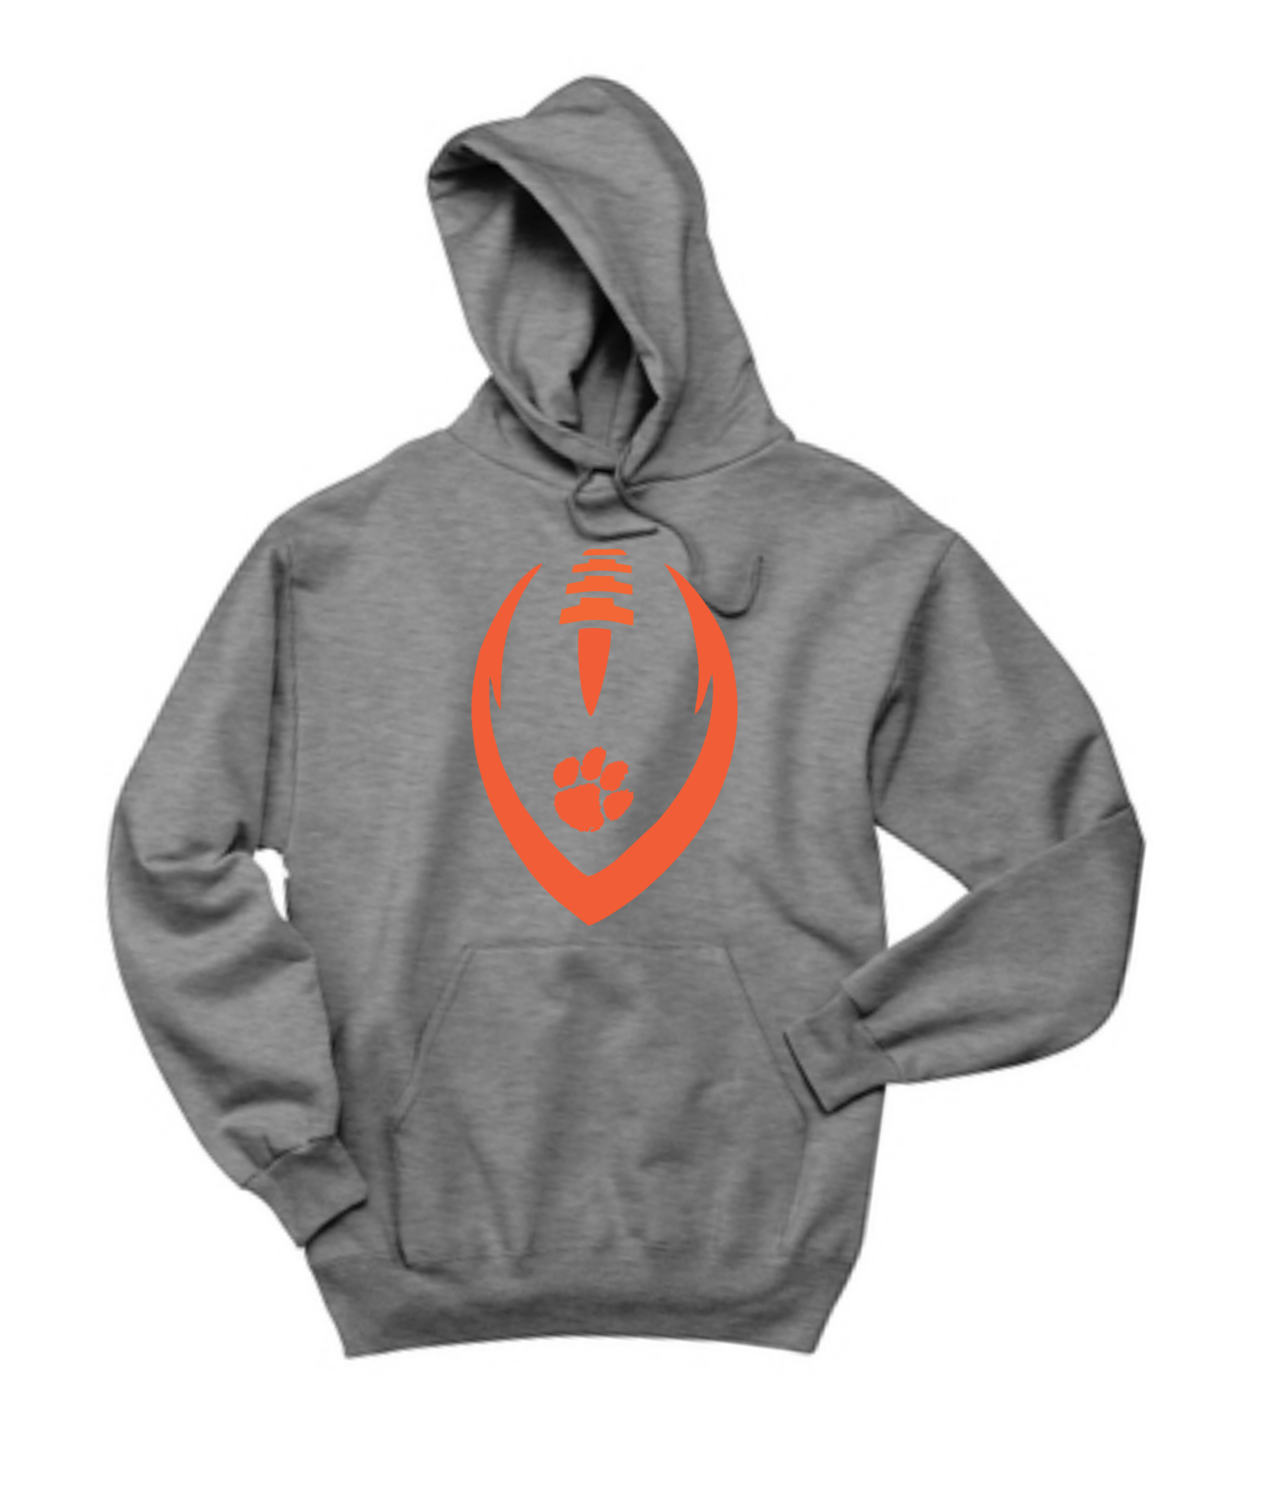 JERZEES® - NuBlend® Pullover Hooded Sweatshirt - Adult/Youth